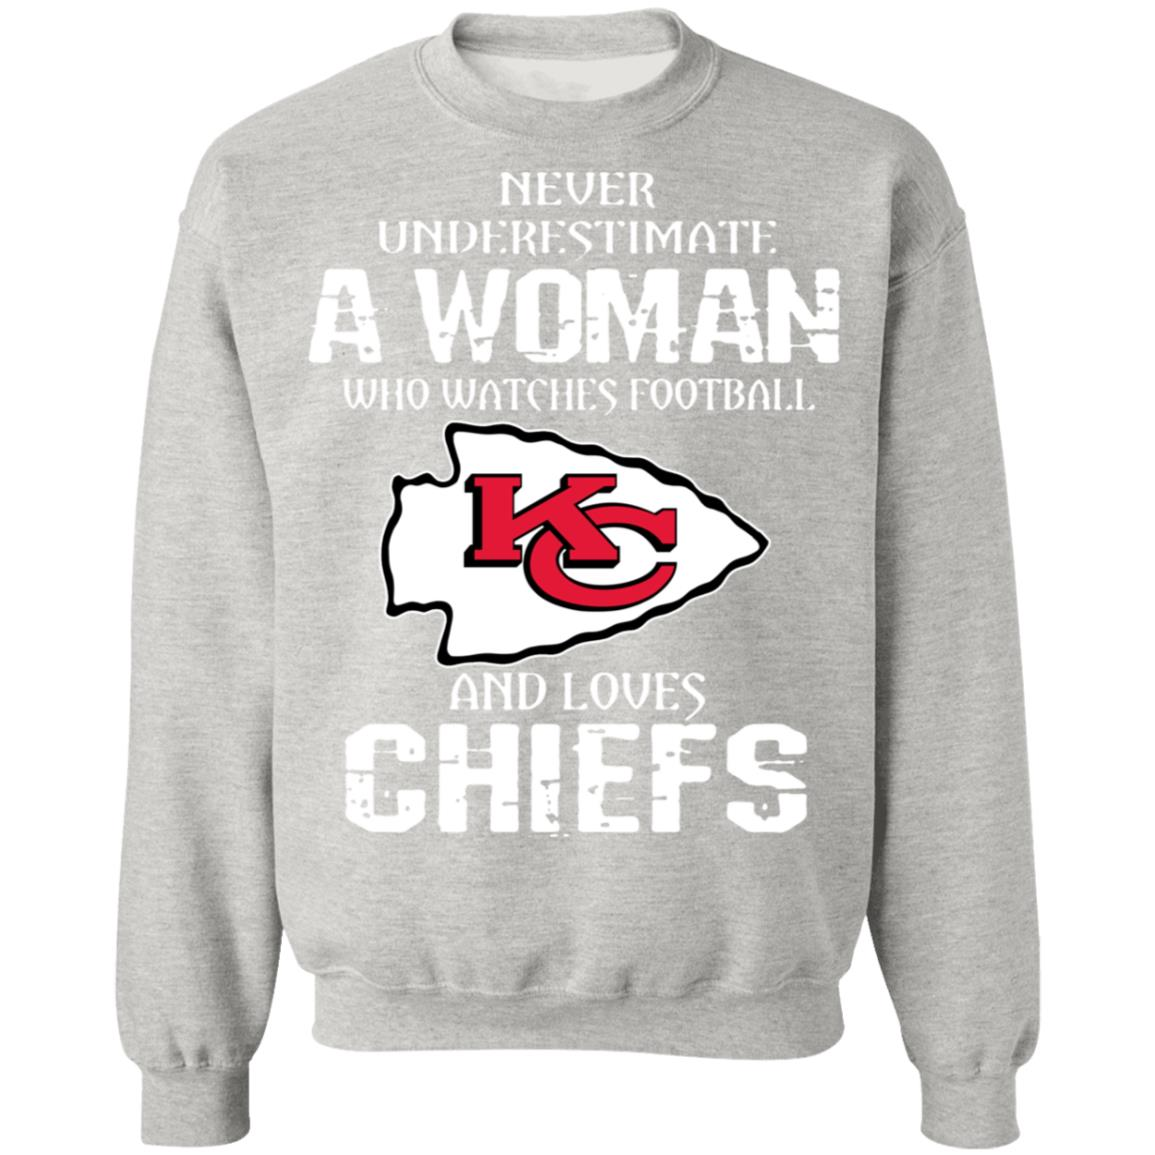 Nfl Never Underestimate A Woman Who Watches Football And Loves Kansas City Chiefs Sweatshirt